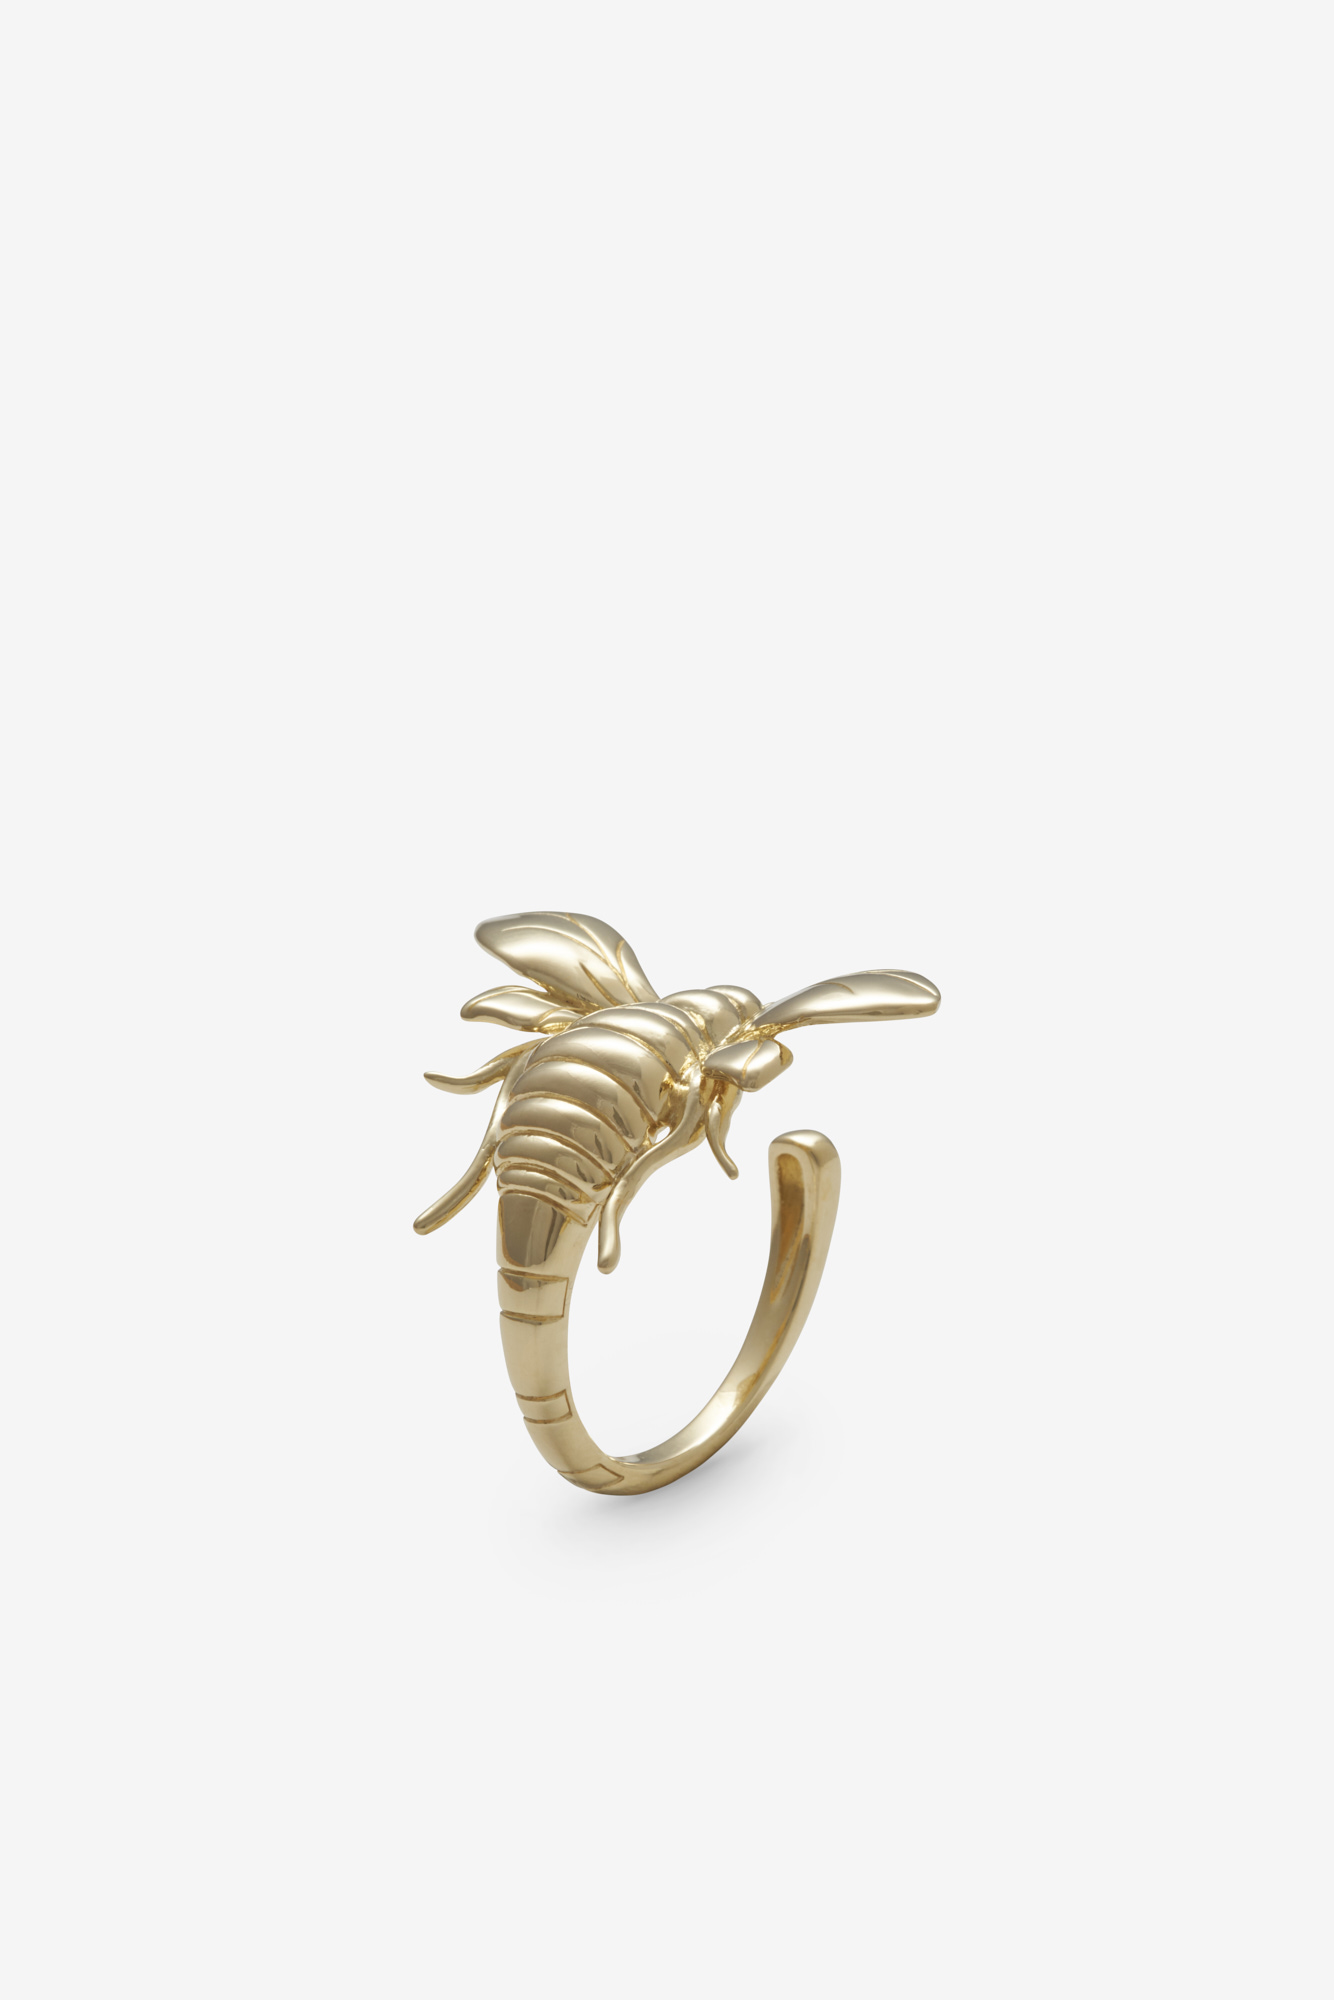 19-03-5-1-003-113-11_Bee Ring_Gold Plated_03